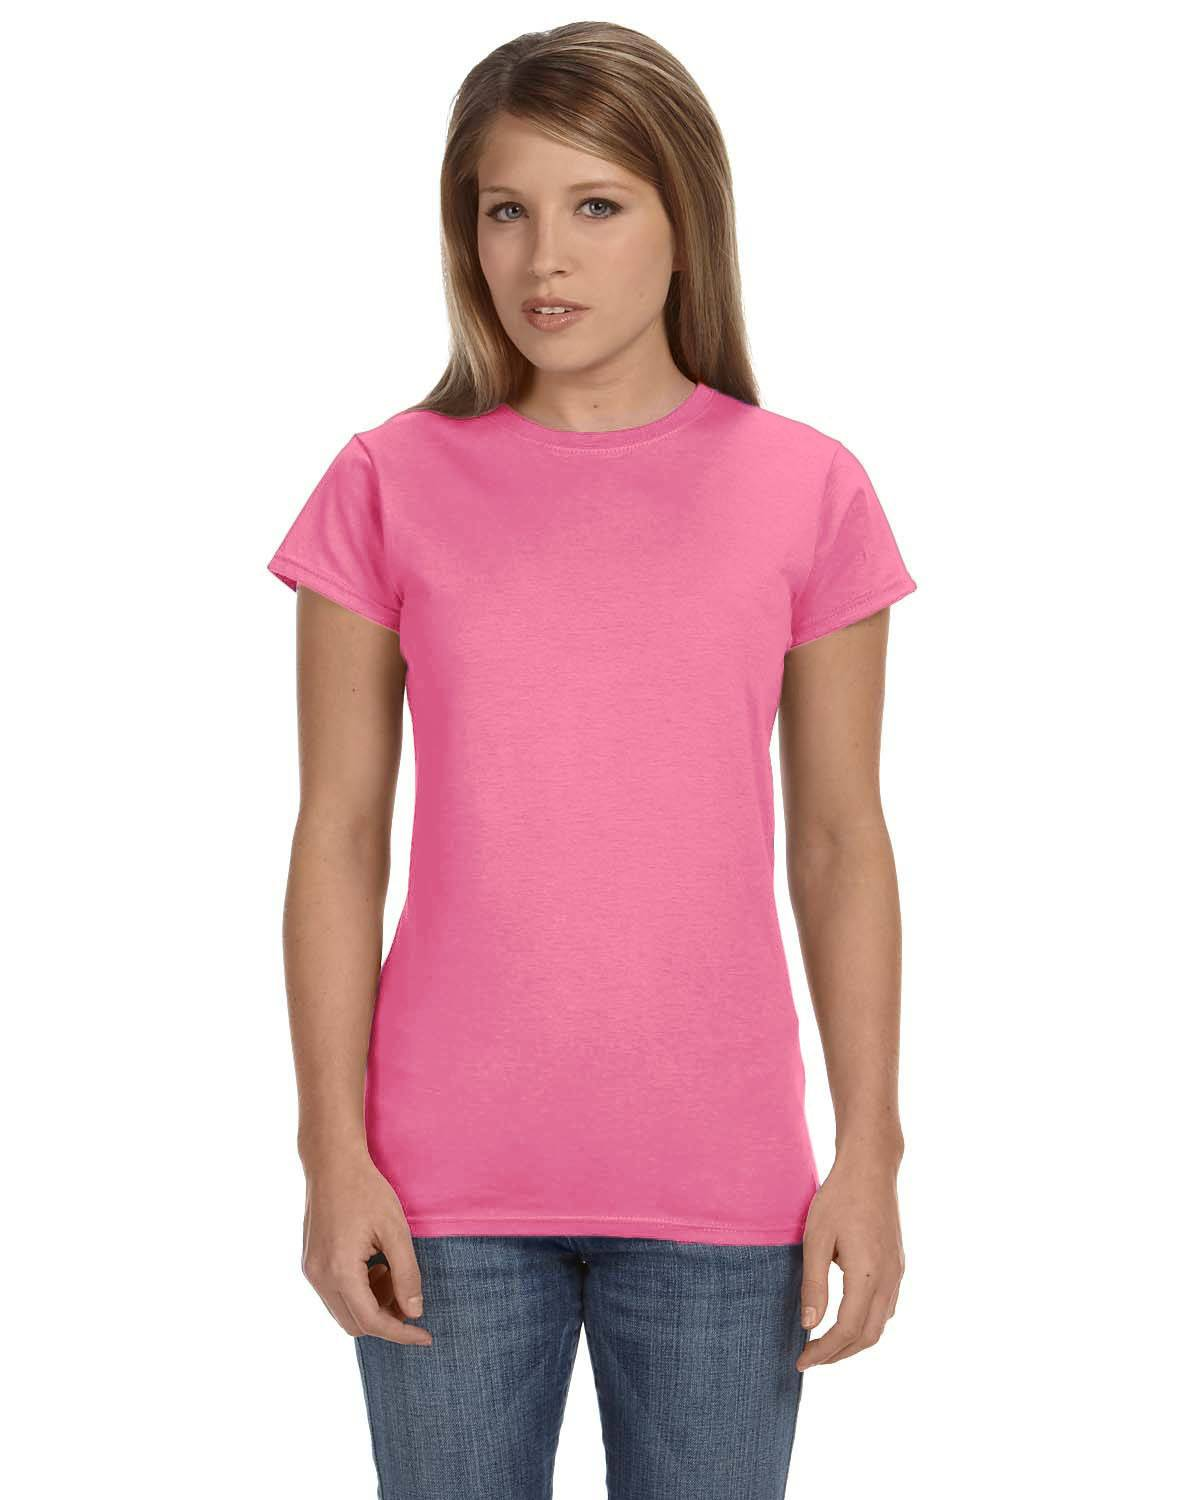 Gildan Ladies' Softstyle 7.5 oz./lin. yd. Fitted T-Shirt | G640L